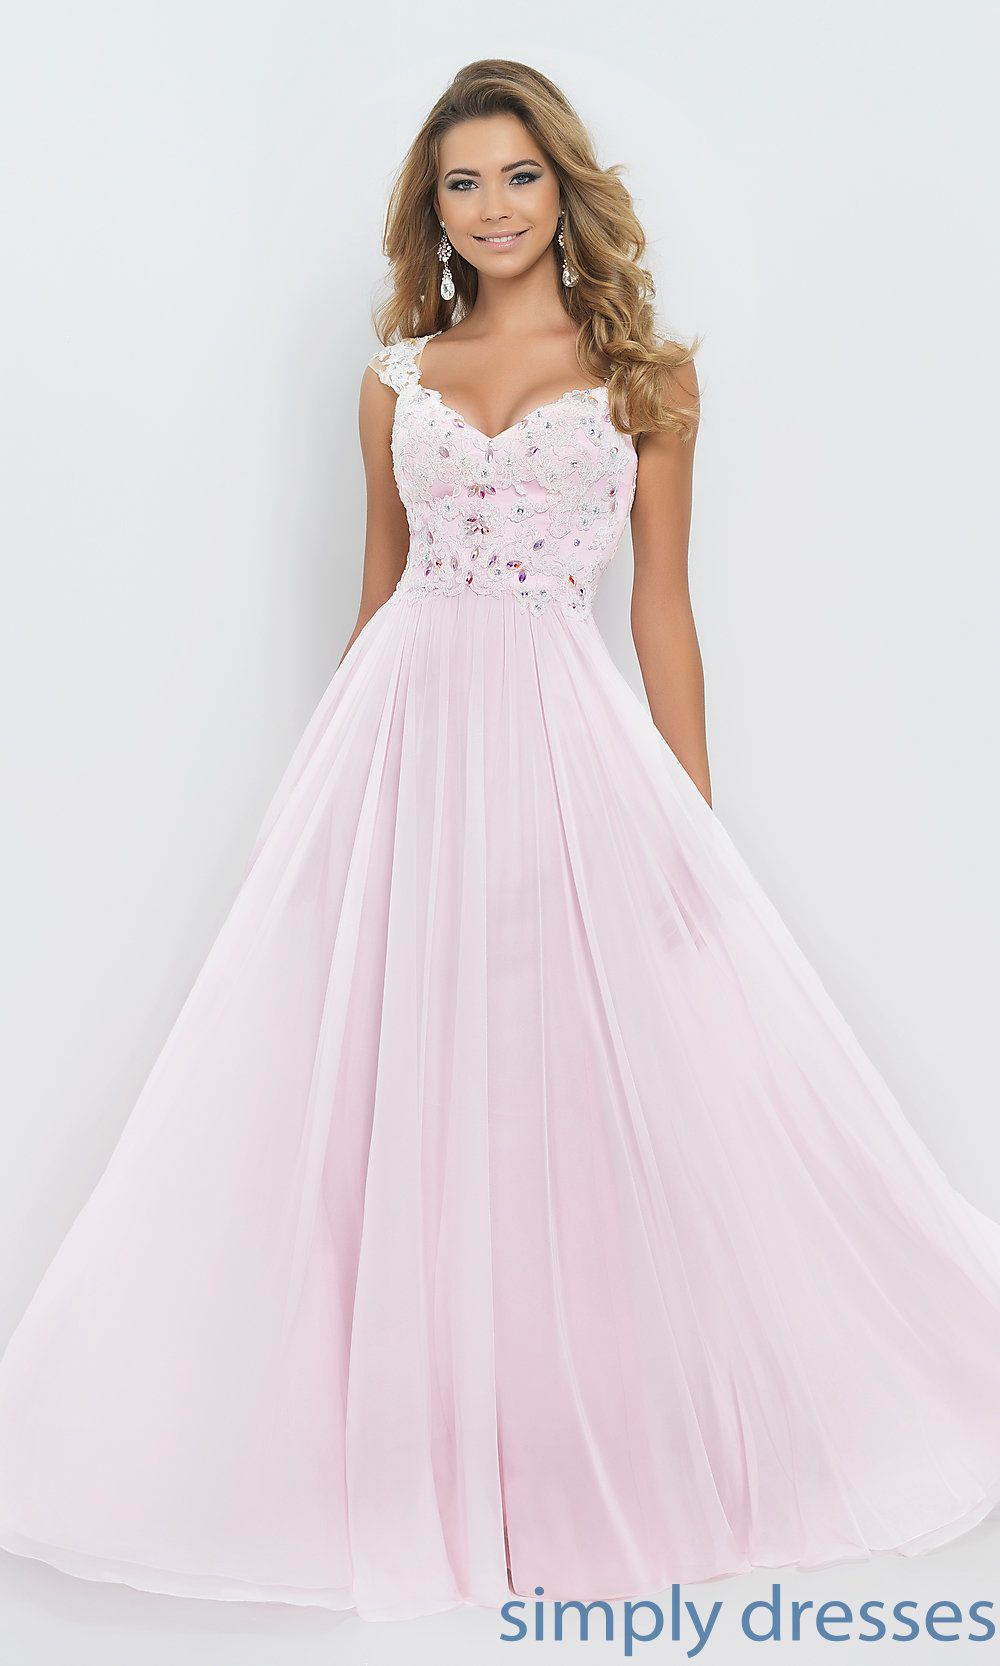 BL-9986 - Pink Blush Cap Sleeve Sweetheart Prom Gown BL-9986 | Cap ...